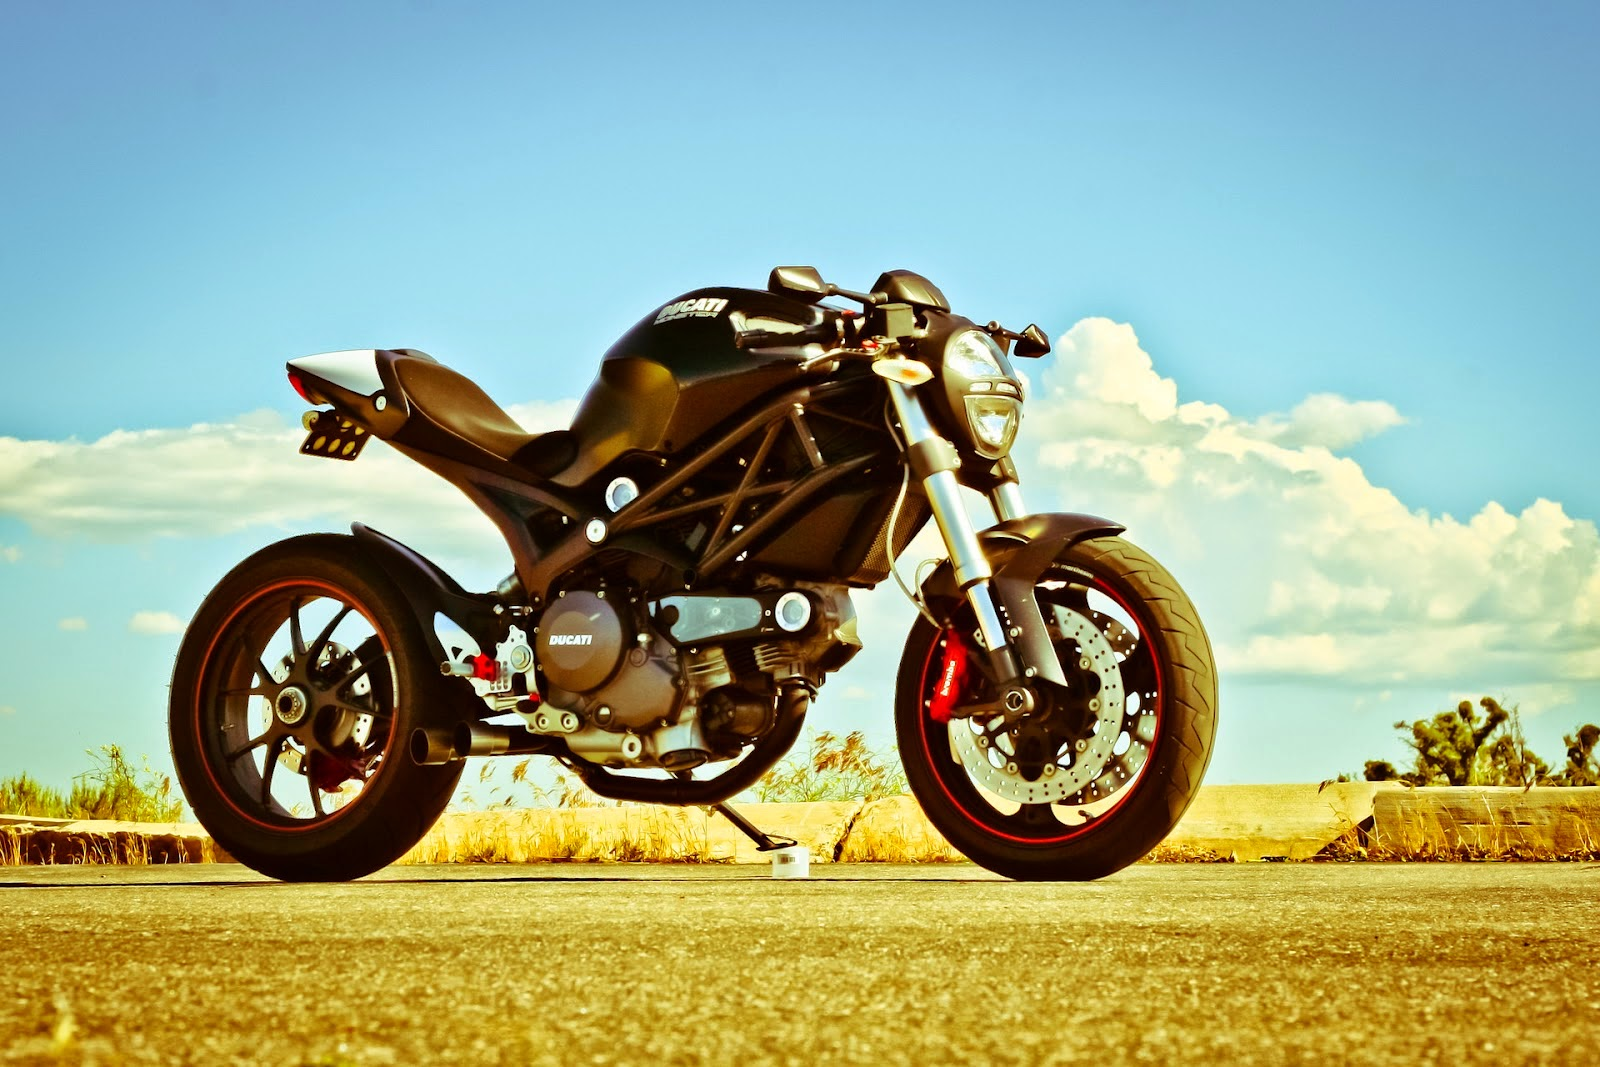 Ducati Monster 696 Cafe Racer Custom Project The